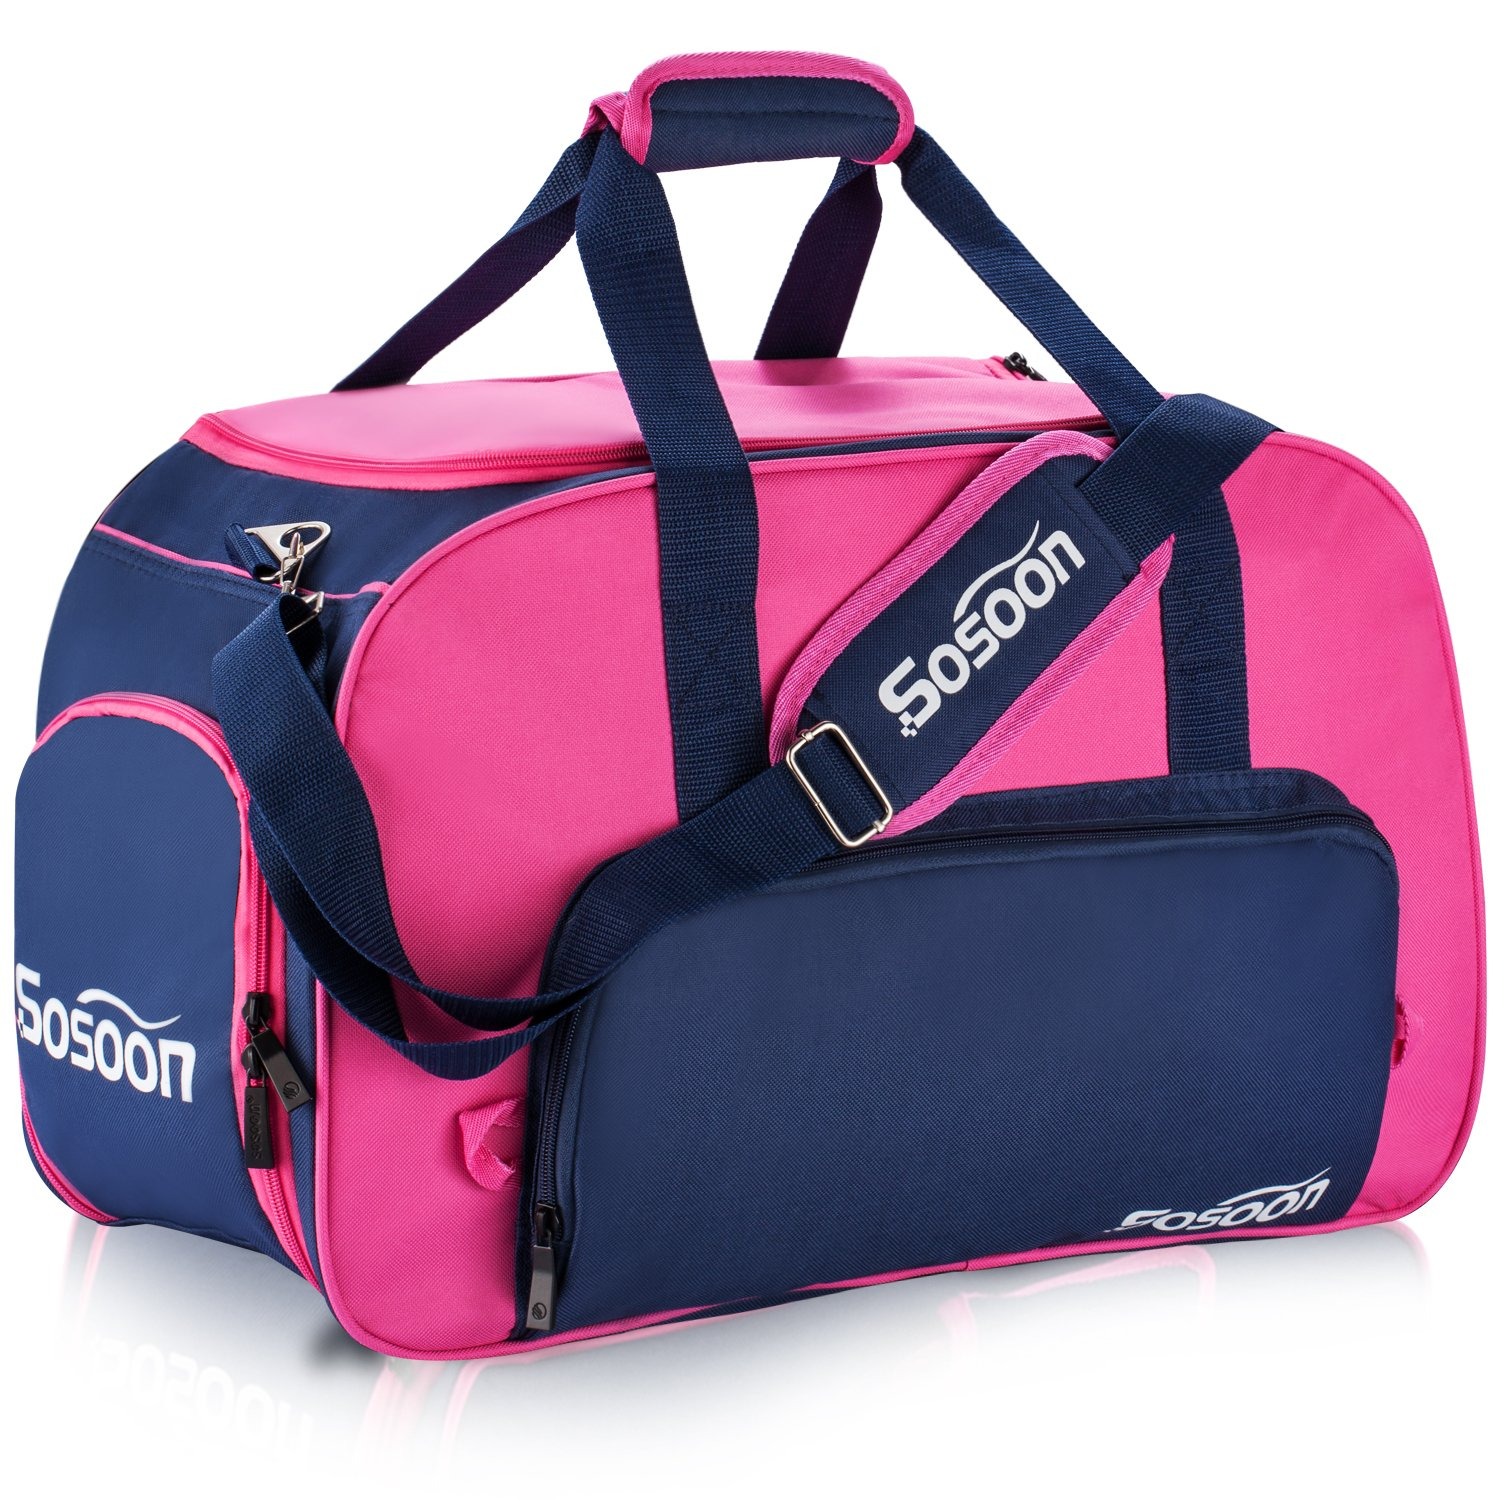 Sosoon Duffel Bag, Folding Storage Bag for Traveling and Business Trip Sports Gym Bag